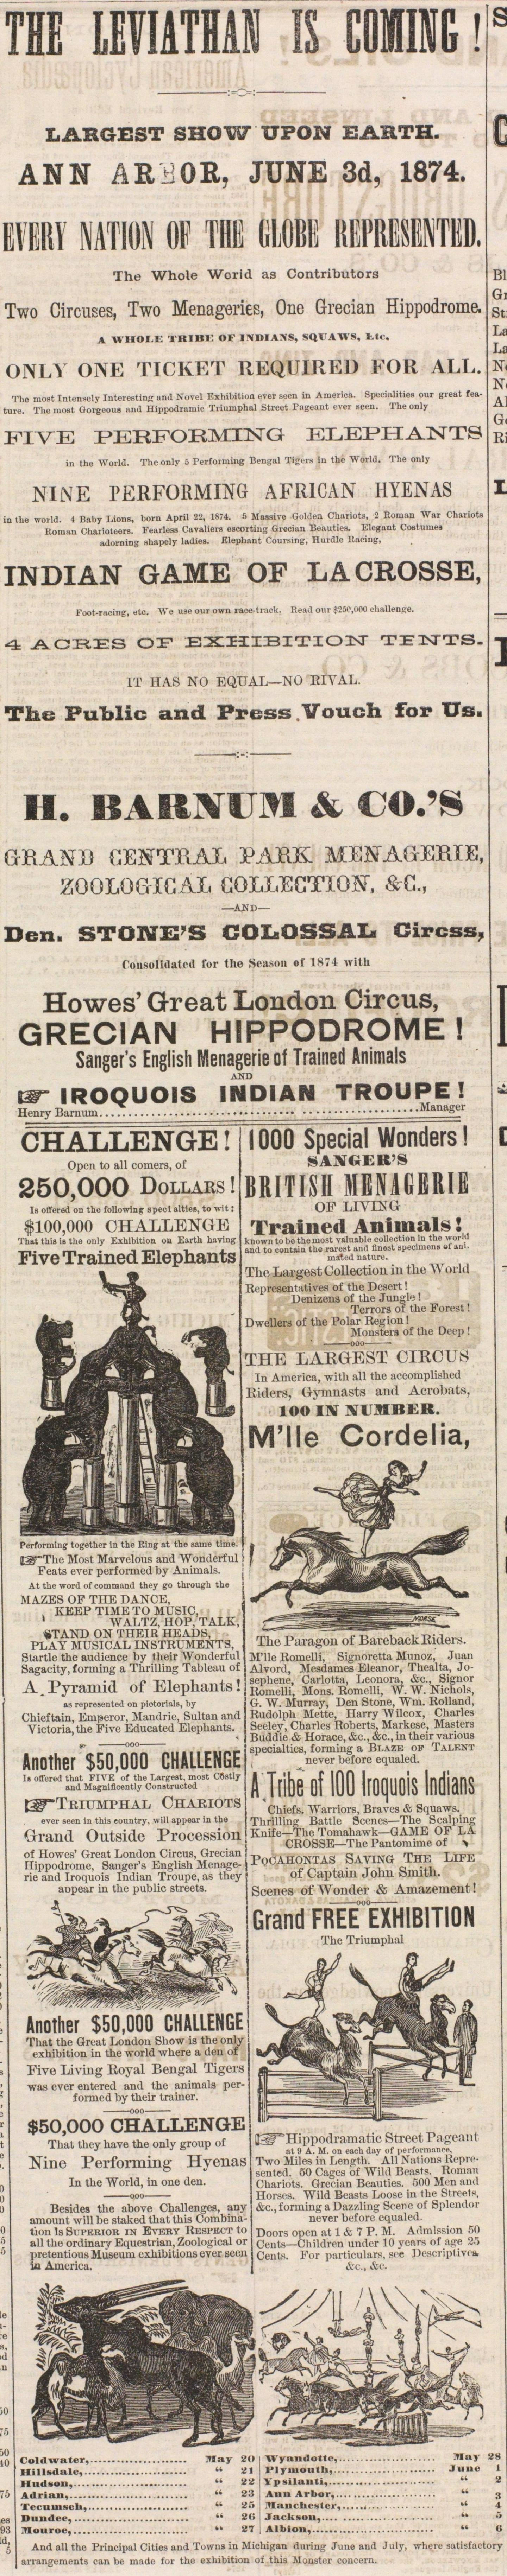 H. Barnum & Co.'s image